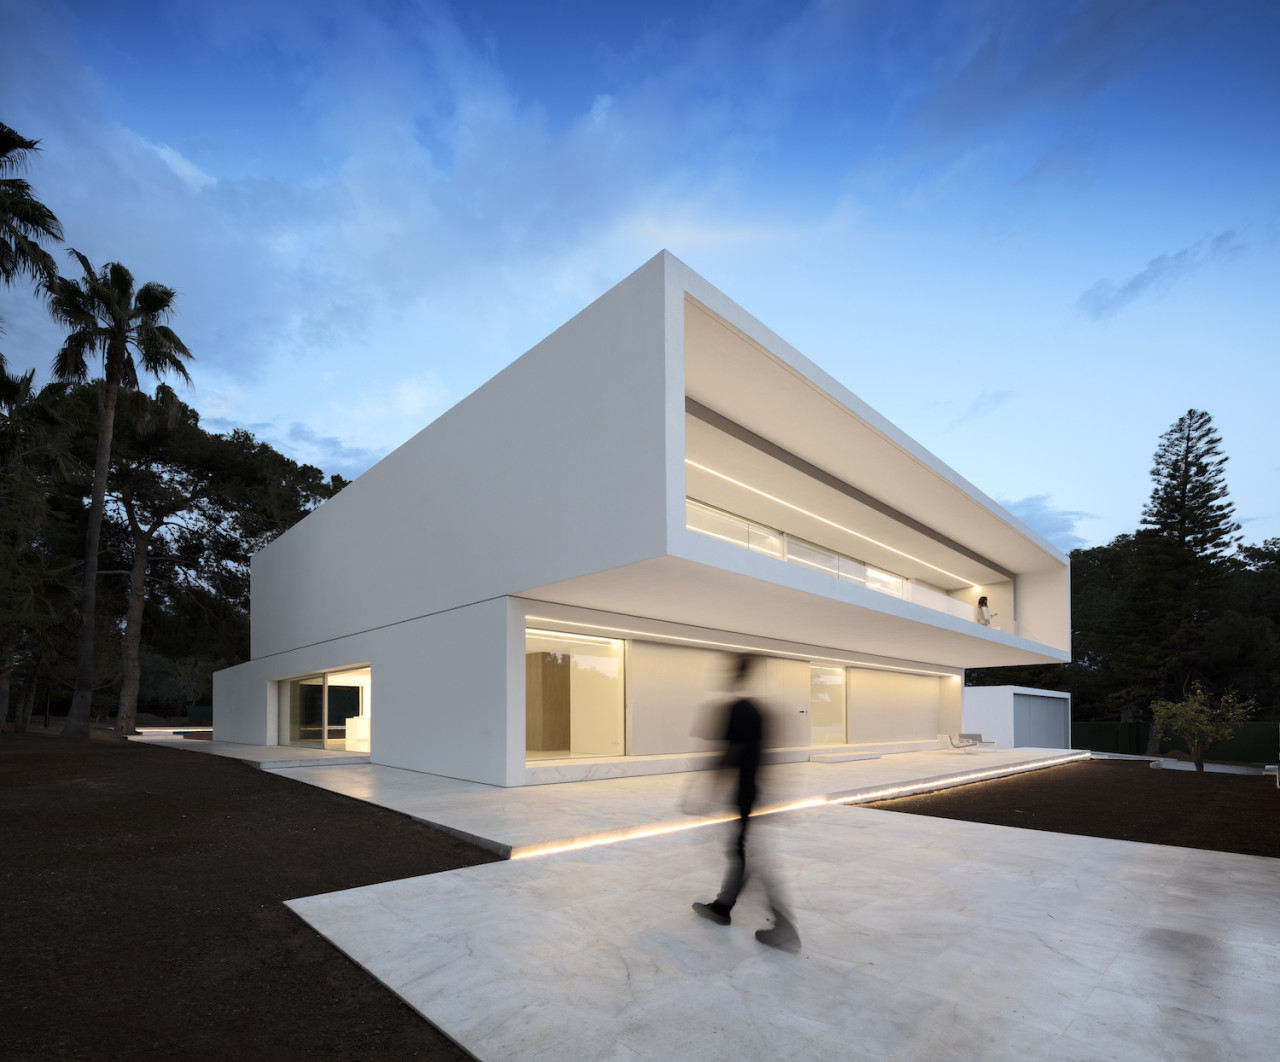 House Between the Pine Forest by Fran Silvestre Arquitectos